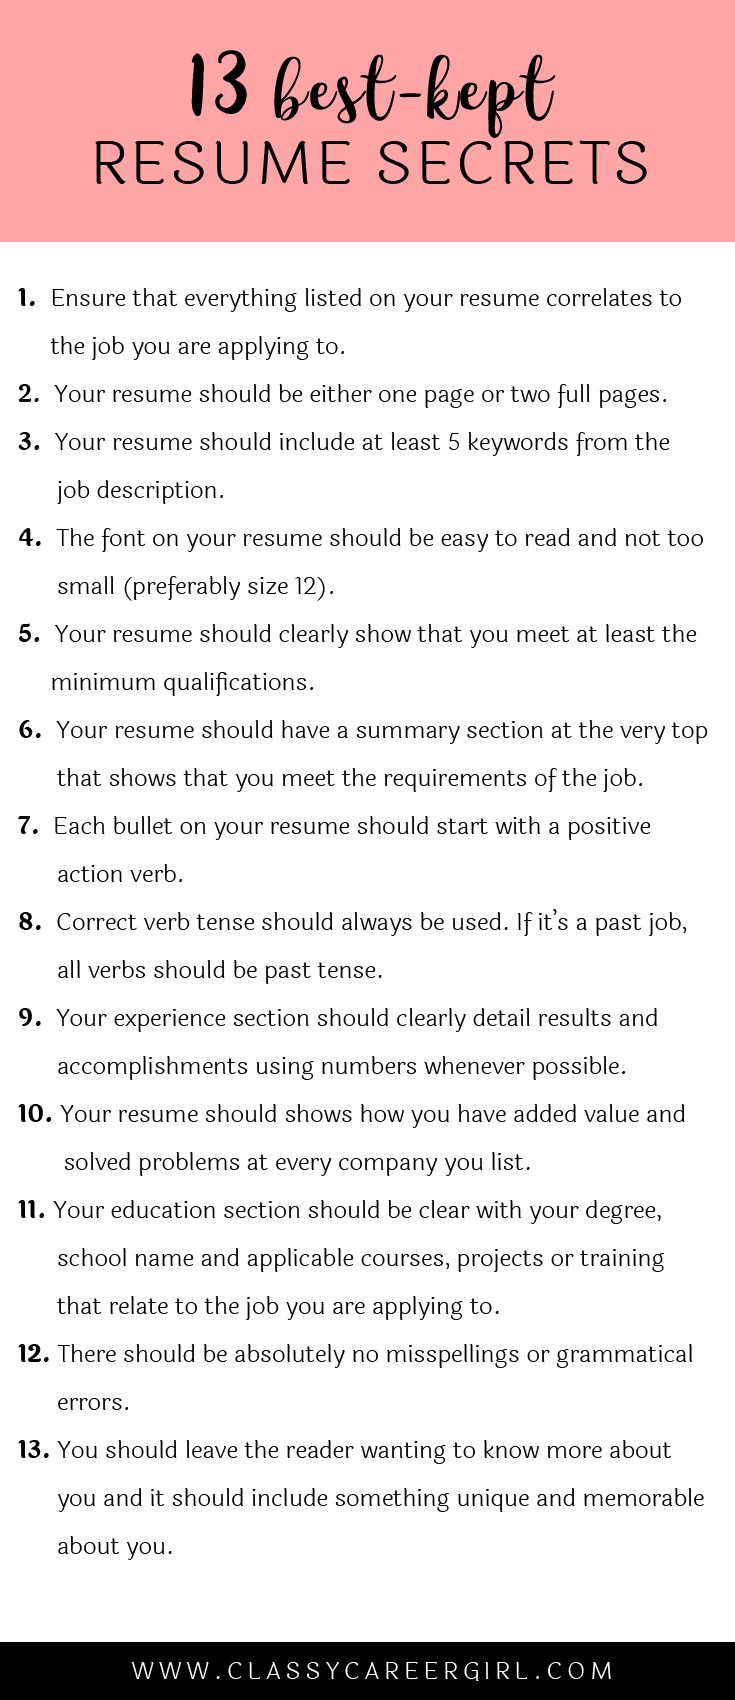 Opposenewapstandardsus  Pleasant  Ideas About Resume On Pinterest  Cv Format Resume Cv And  With Luxury Some Hiring Managers Will Toss Your Resume Out If You Dont Know These  With Captivating Resume Format Microsoft Word Also Entry Level Human Resources Resume In Addition Best Resumes Format And List Of Action Verbs For Resume As Well As Resumes For High School Graduates Additionally Office Manager Resume Objective From Pinterestcom With Opposenewapstandardsus  Luxury  Ideas About Resume On Pinterest  Cv Format Resume Cv And  With Captivating Some Hiring Managers Will Toss Your Resume Out If You Dont Know These  And Pleasant Resume Format Microsoft Word Also Entry Level Human Resources Resume In Addition Best Resumes Format From Pinterestcom